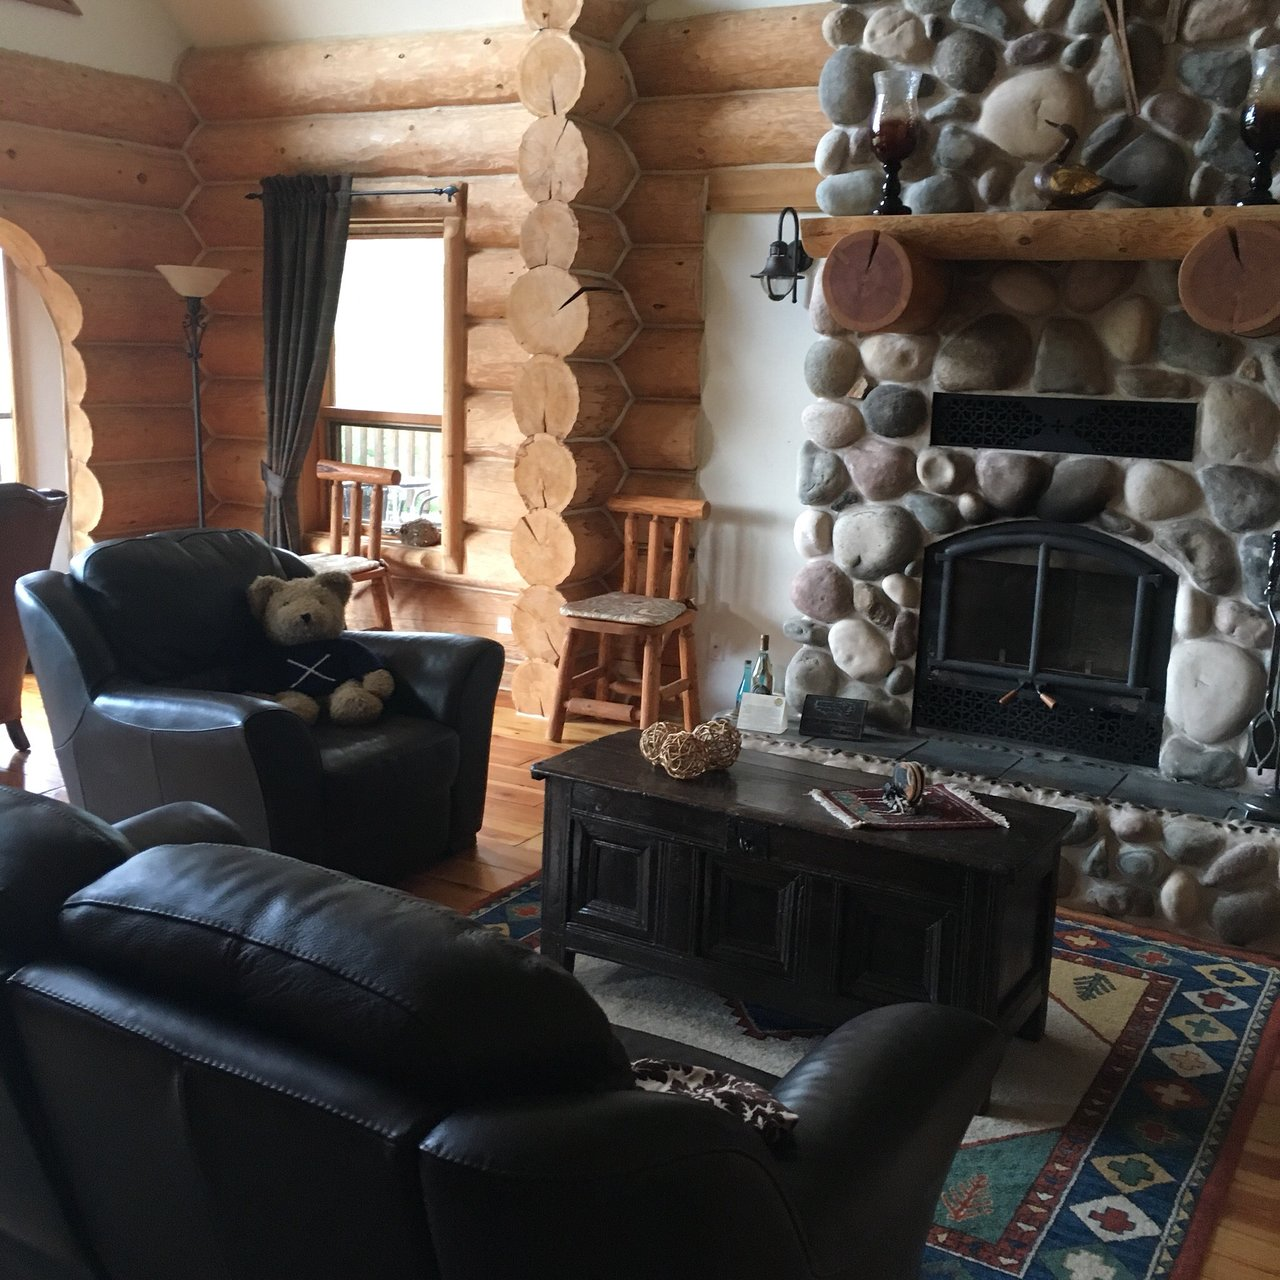 CLEARWATER SPRINGS RANCH Updated 2018 Prices